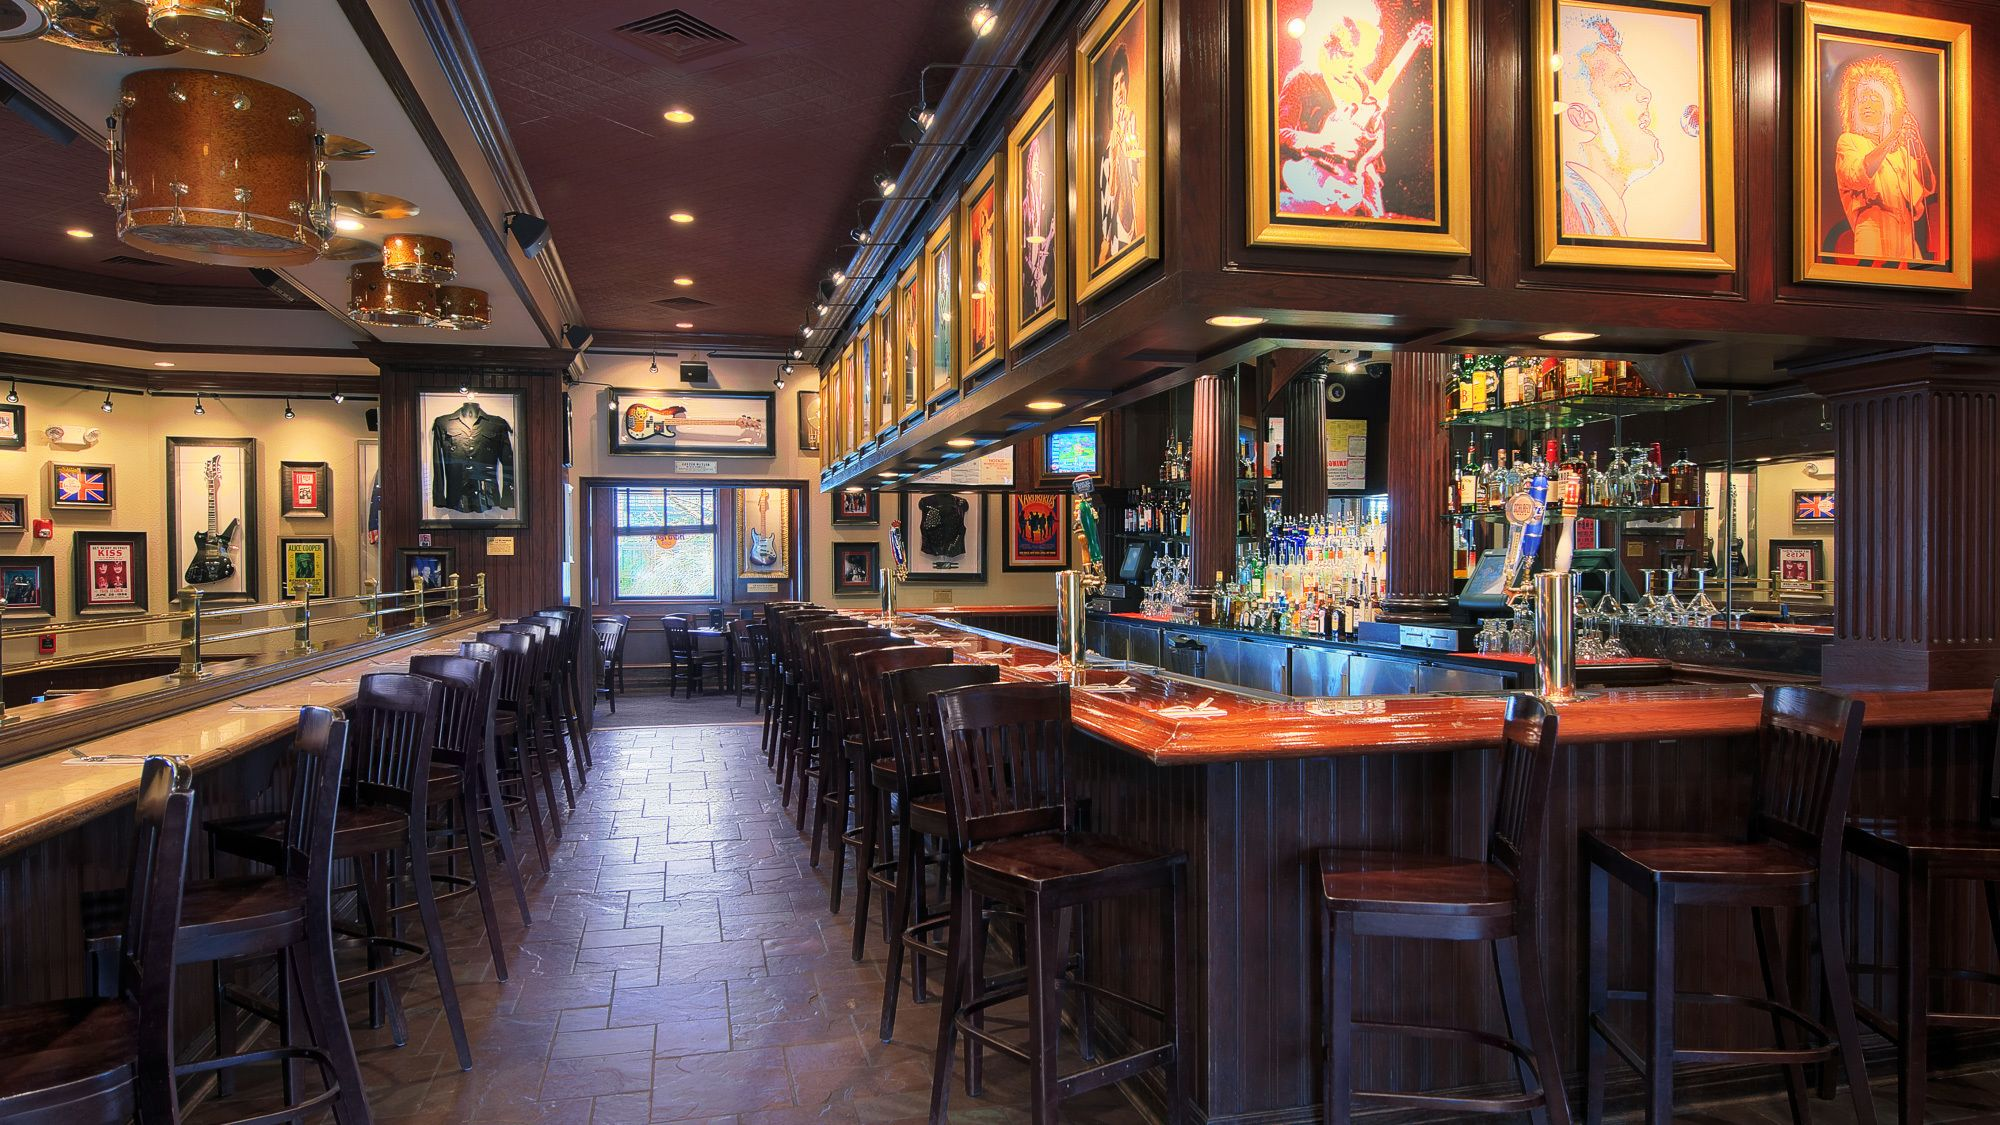 Bar area of the St. Louis Hard Rock Cafe